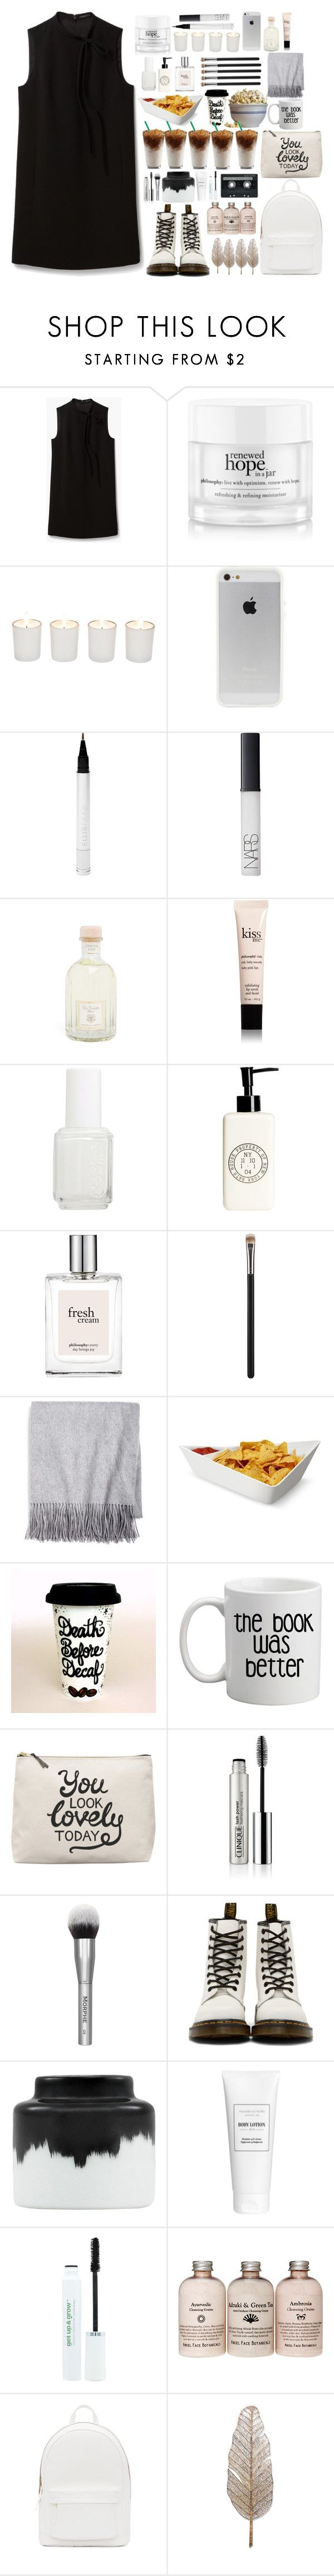 """.......********"" by ellie-xxix-799 ❤ liked on Polyvore featuring Theory, philosophy, Witchery, Ellis Faas, NARS Cosmetics, Dr. Vranjes, Essie, H&M, MAC Cosmetics and Sofia Cashmere"